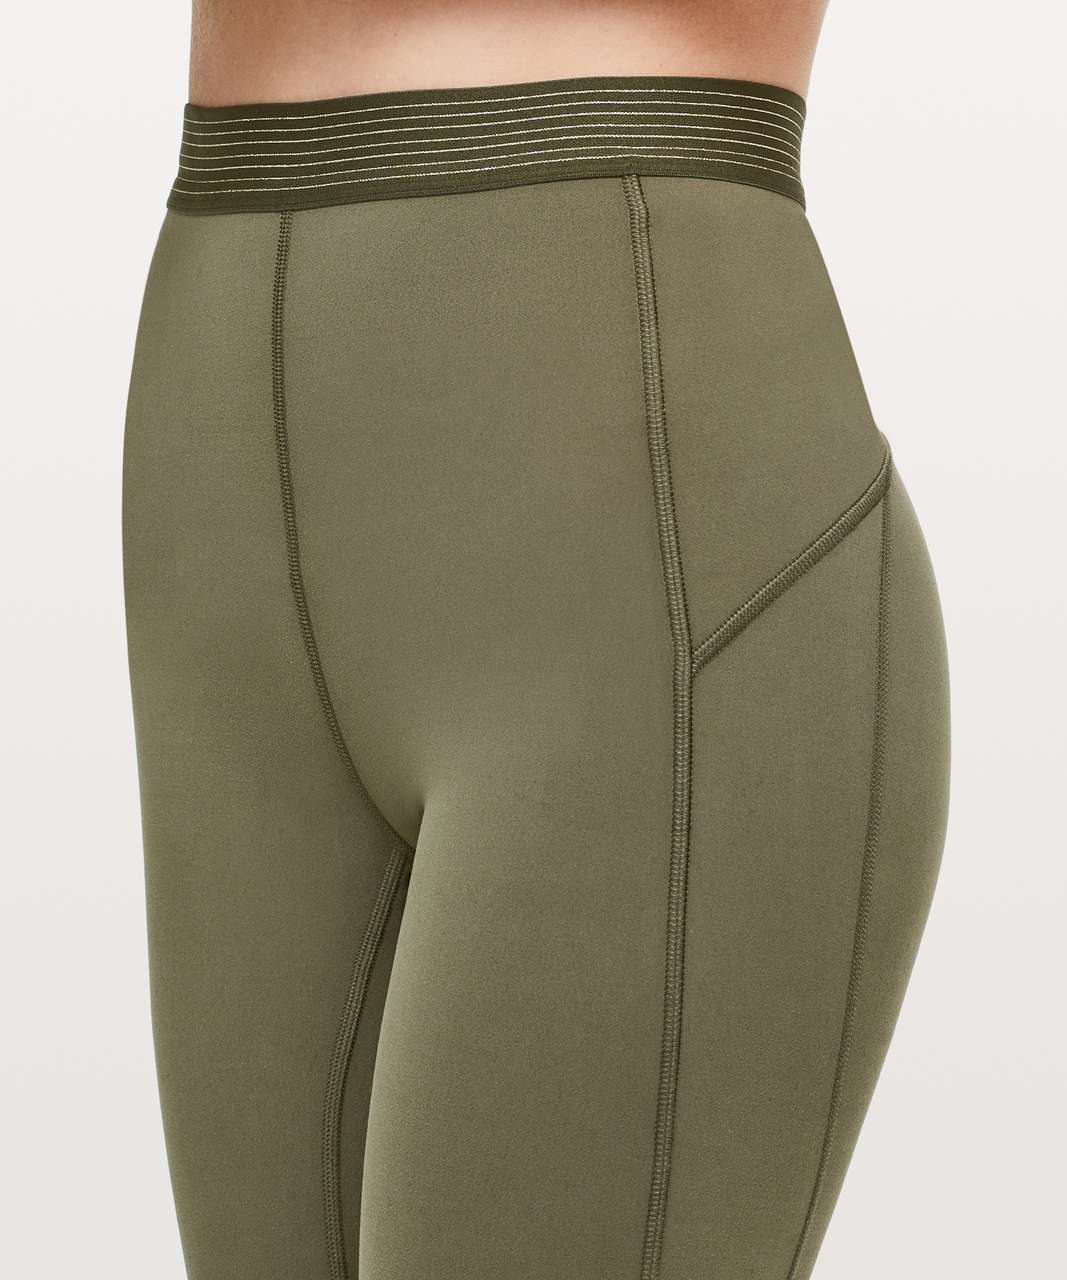 d7f9ff2f5 Lululemon Principal Dancer Golden Lining Tight  28